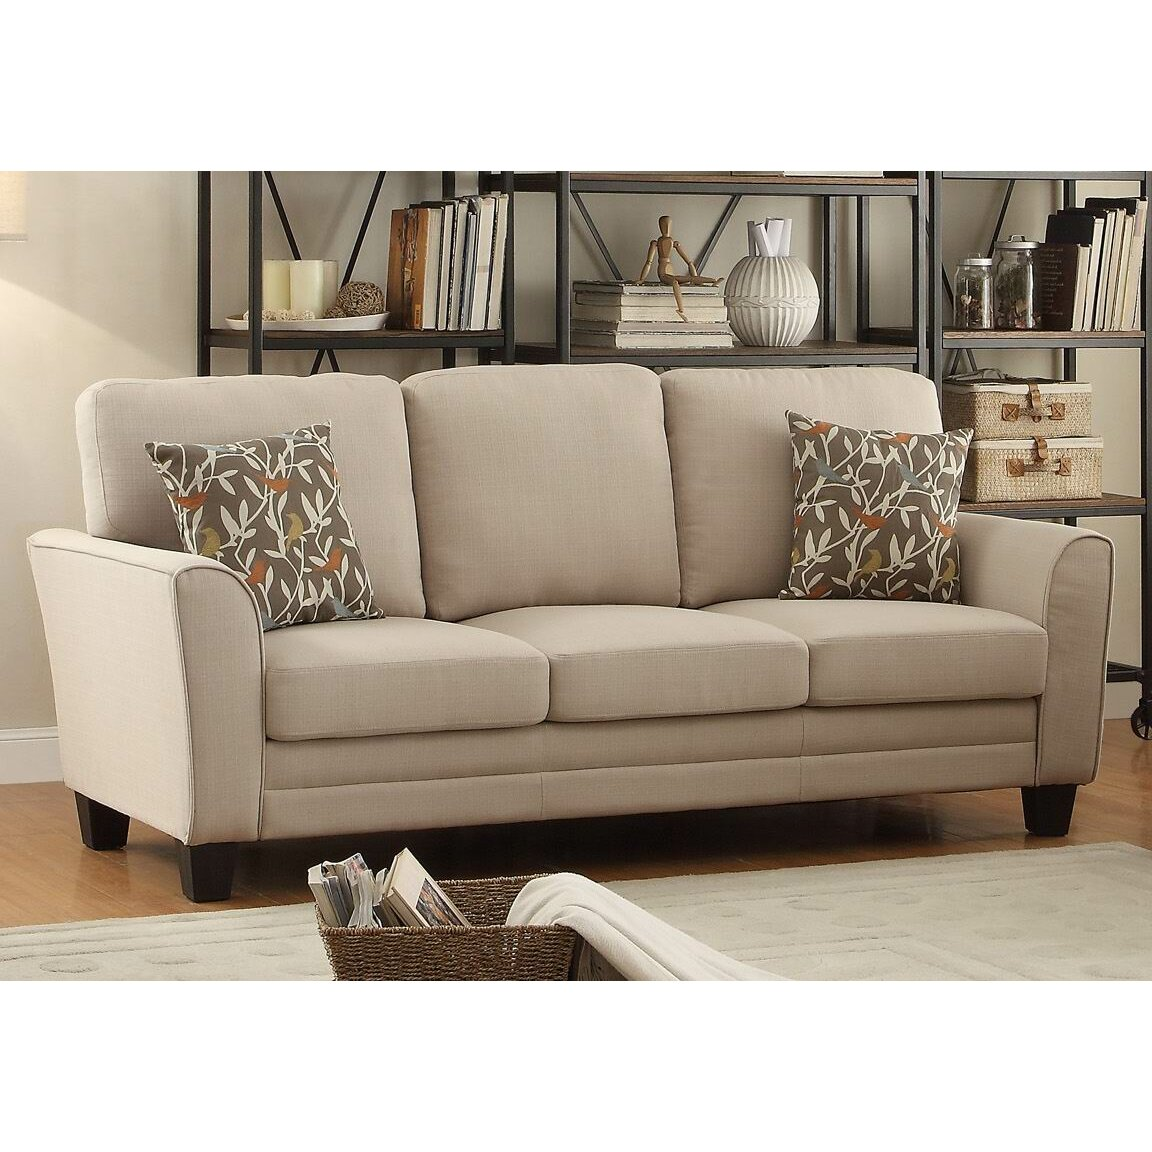 Wayfair supply furniture living room sets homelegance sku